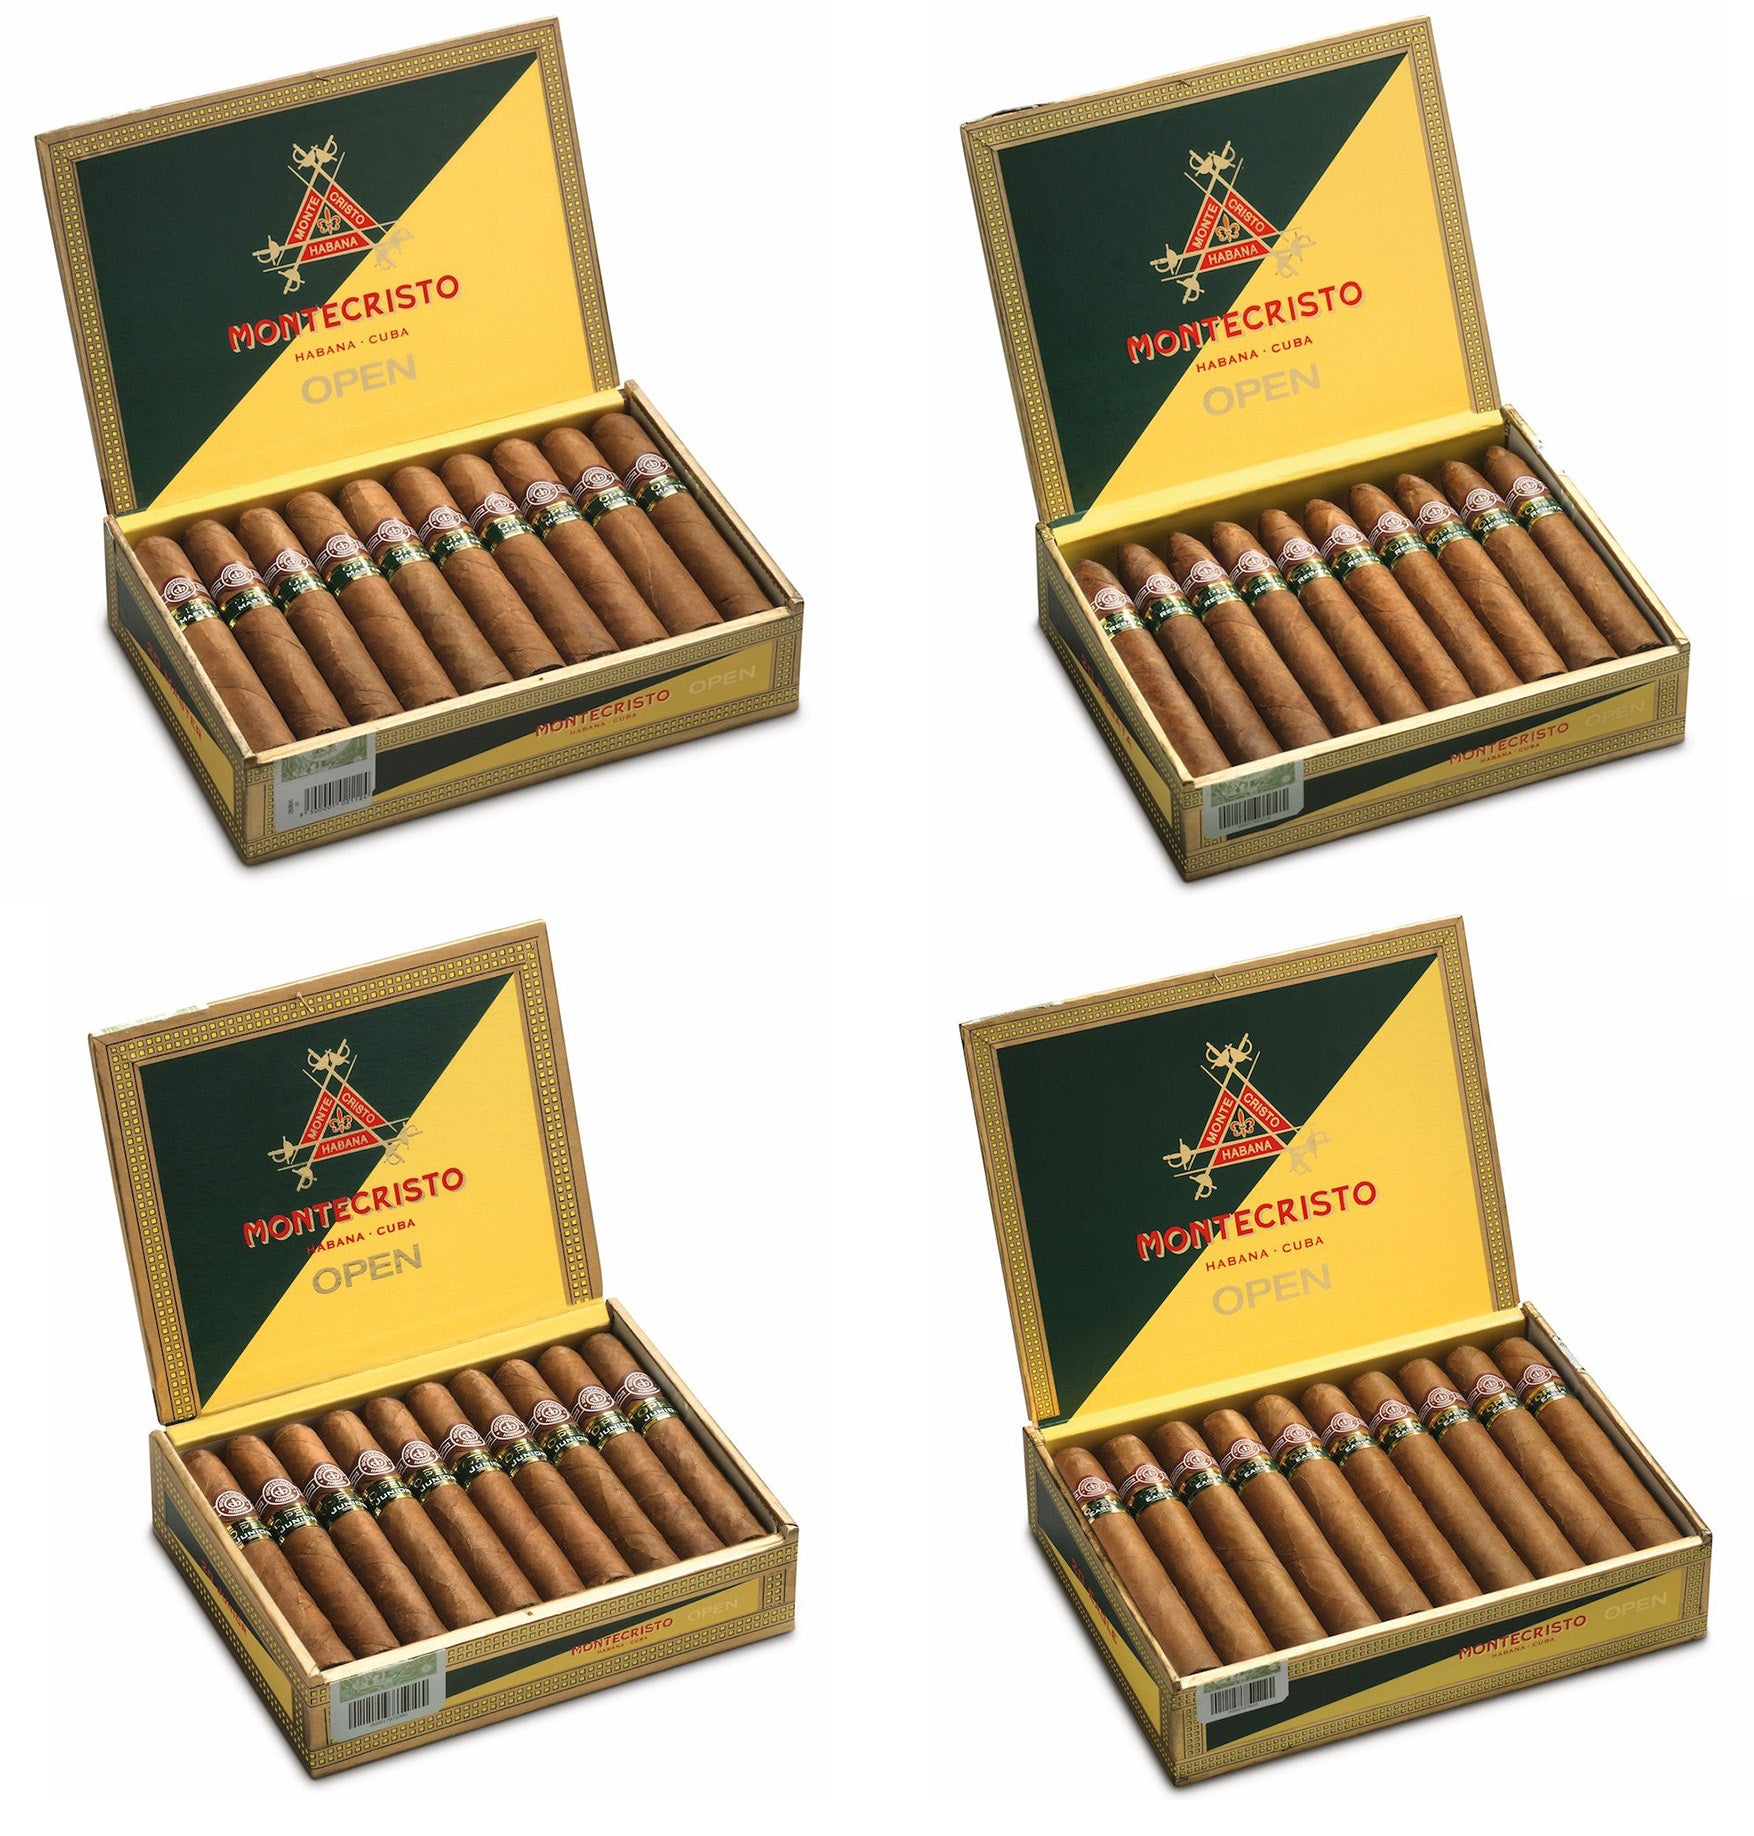 montecristo open master cigar montecristo open regata cigar montecristo open junior cigar montecristo open eagle cigar egm cigars